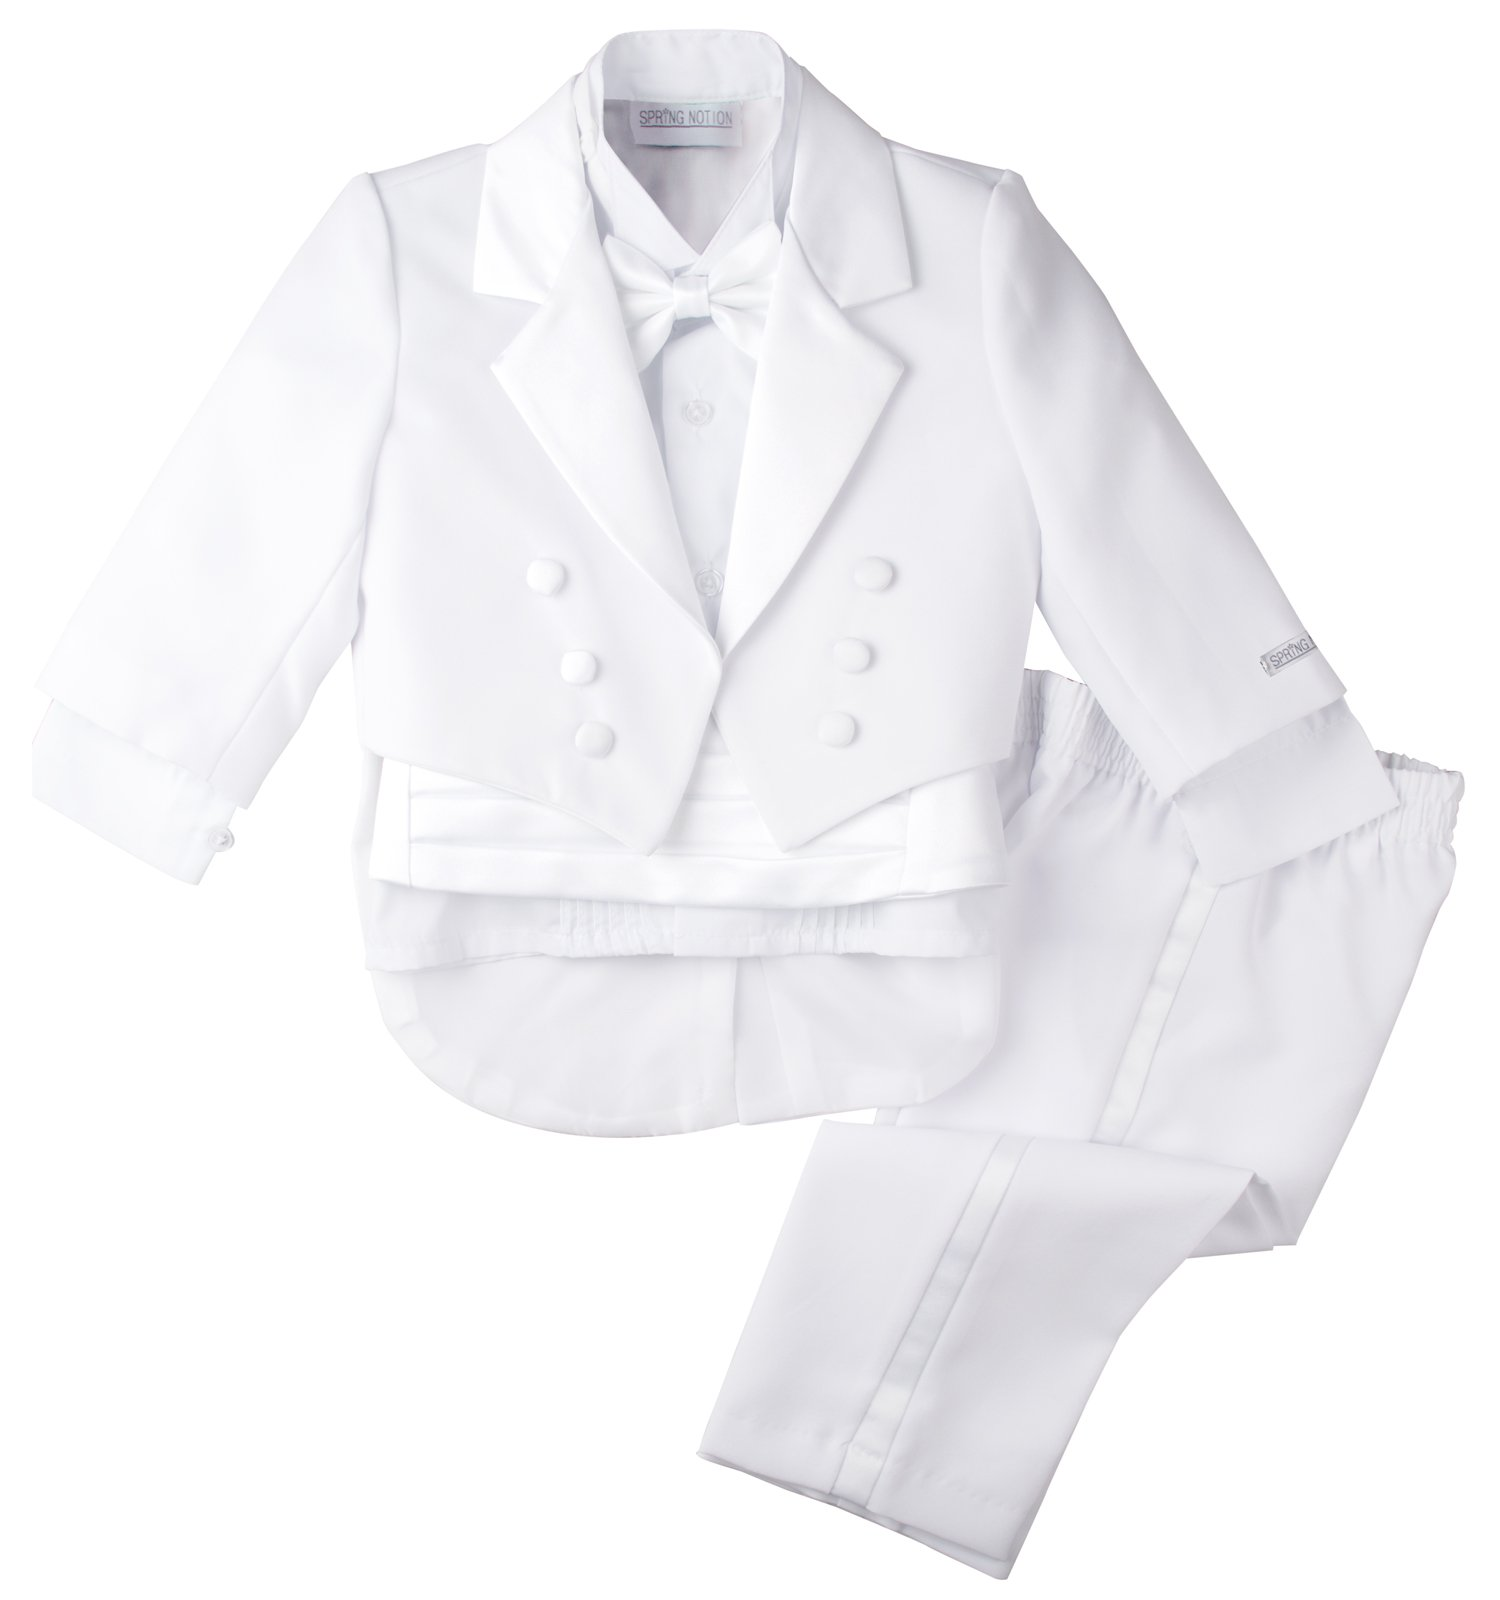 Spring Notion Baby Boys' White Classic Tuxedo with Tail 4T by Spring Notion